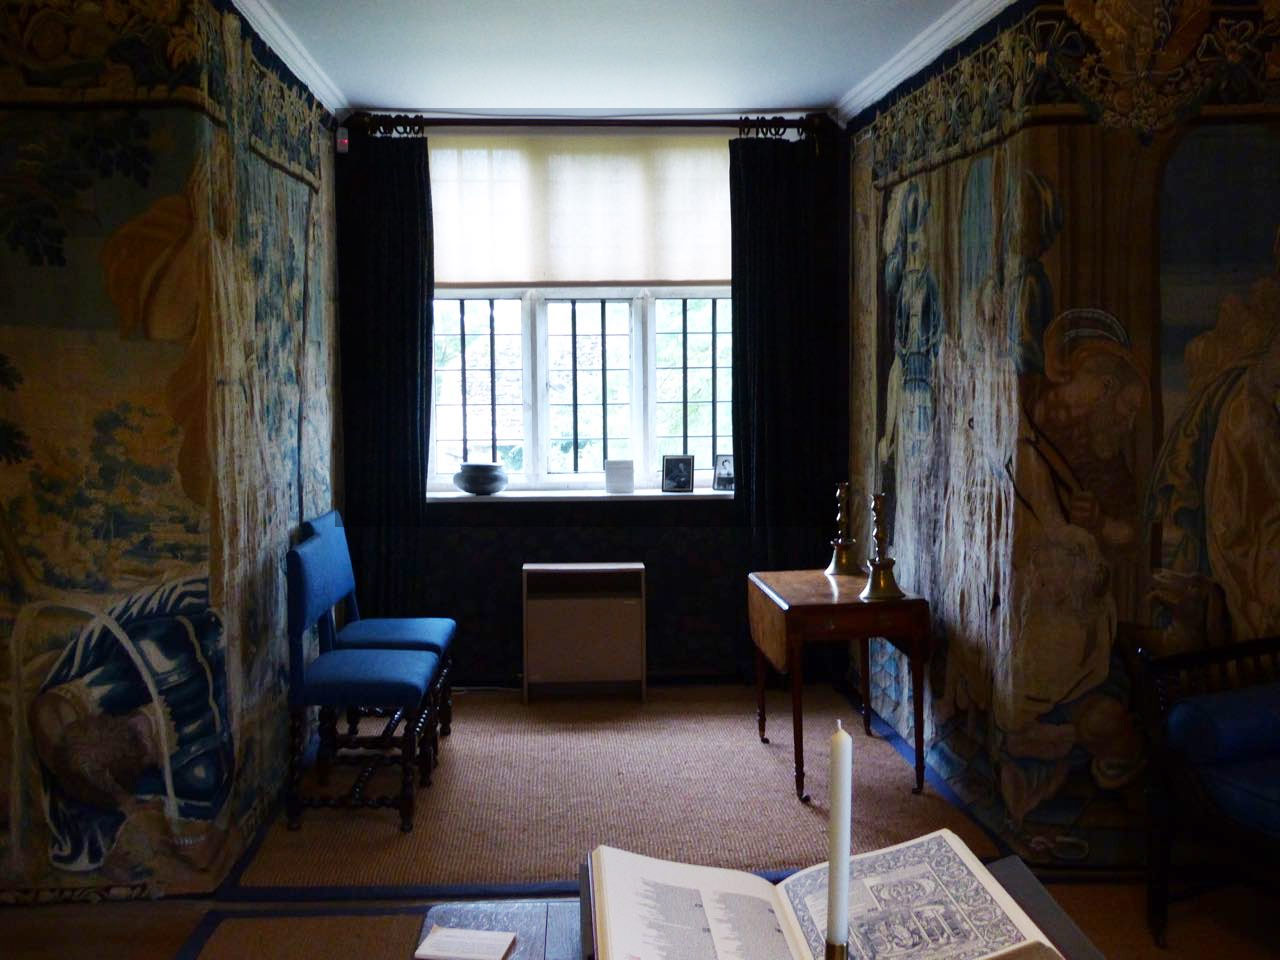 Tapestry room at Kelmscott Manor with Rossetti table.